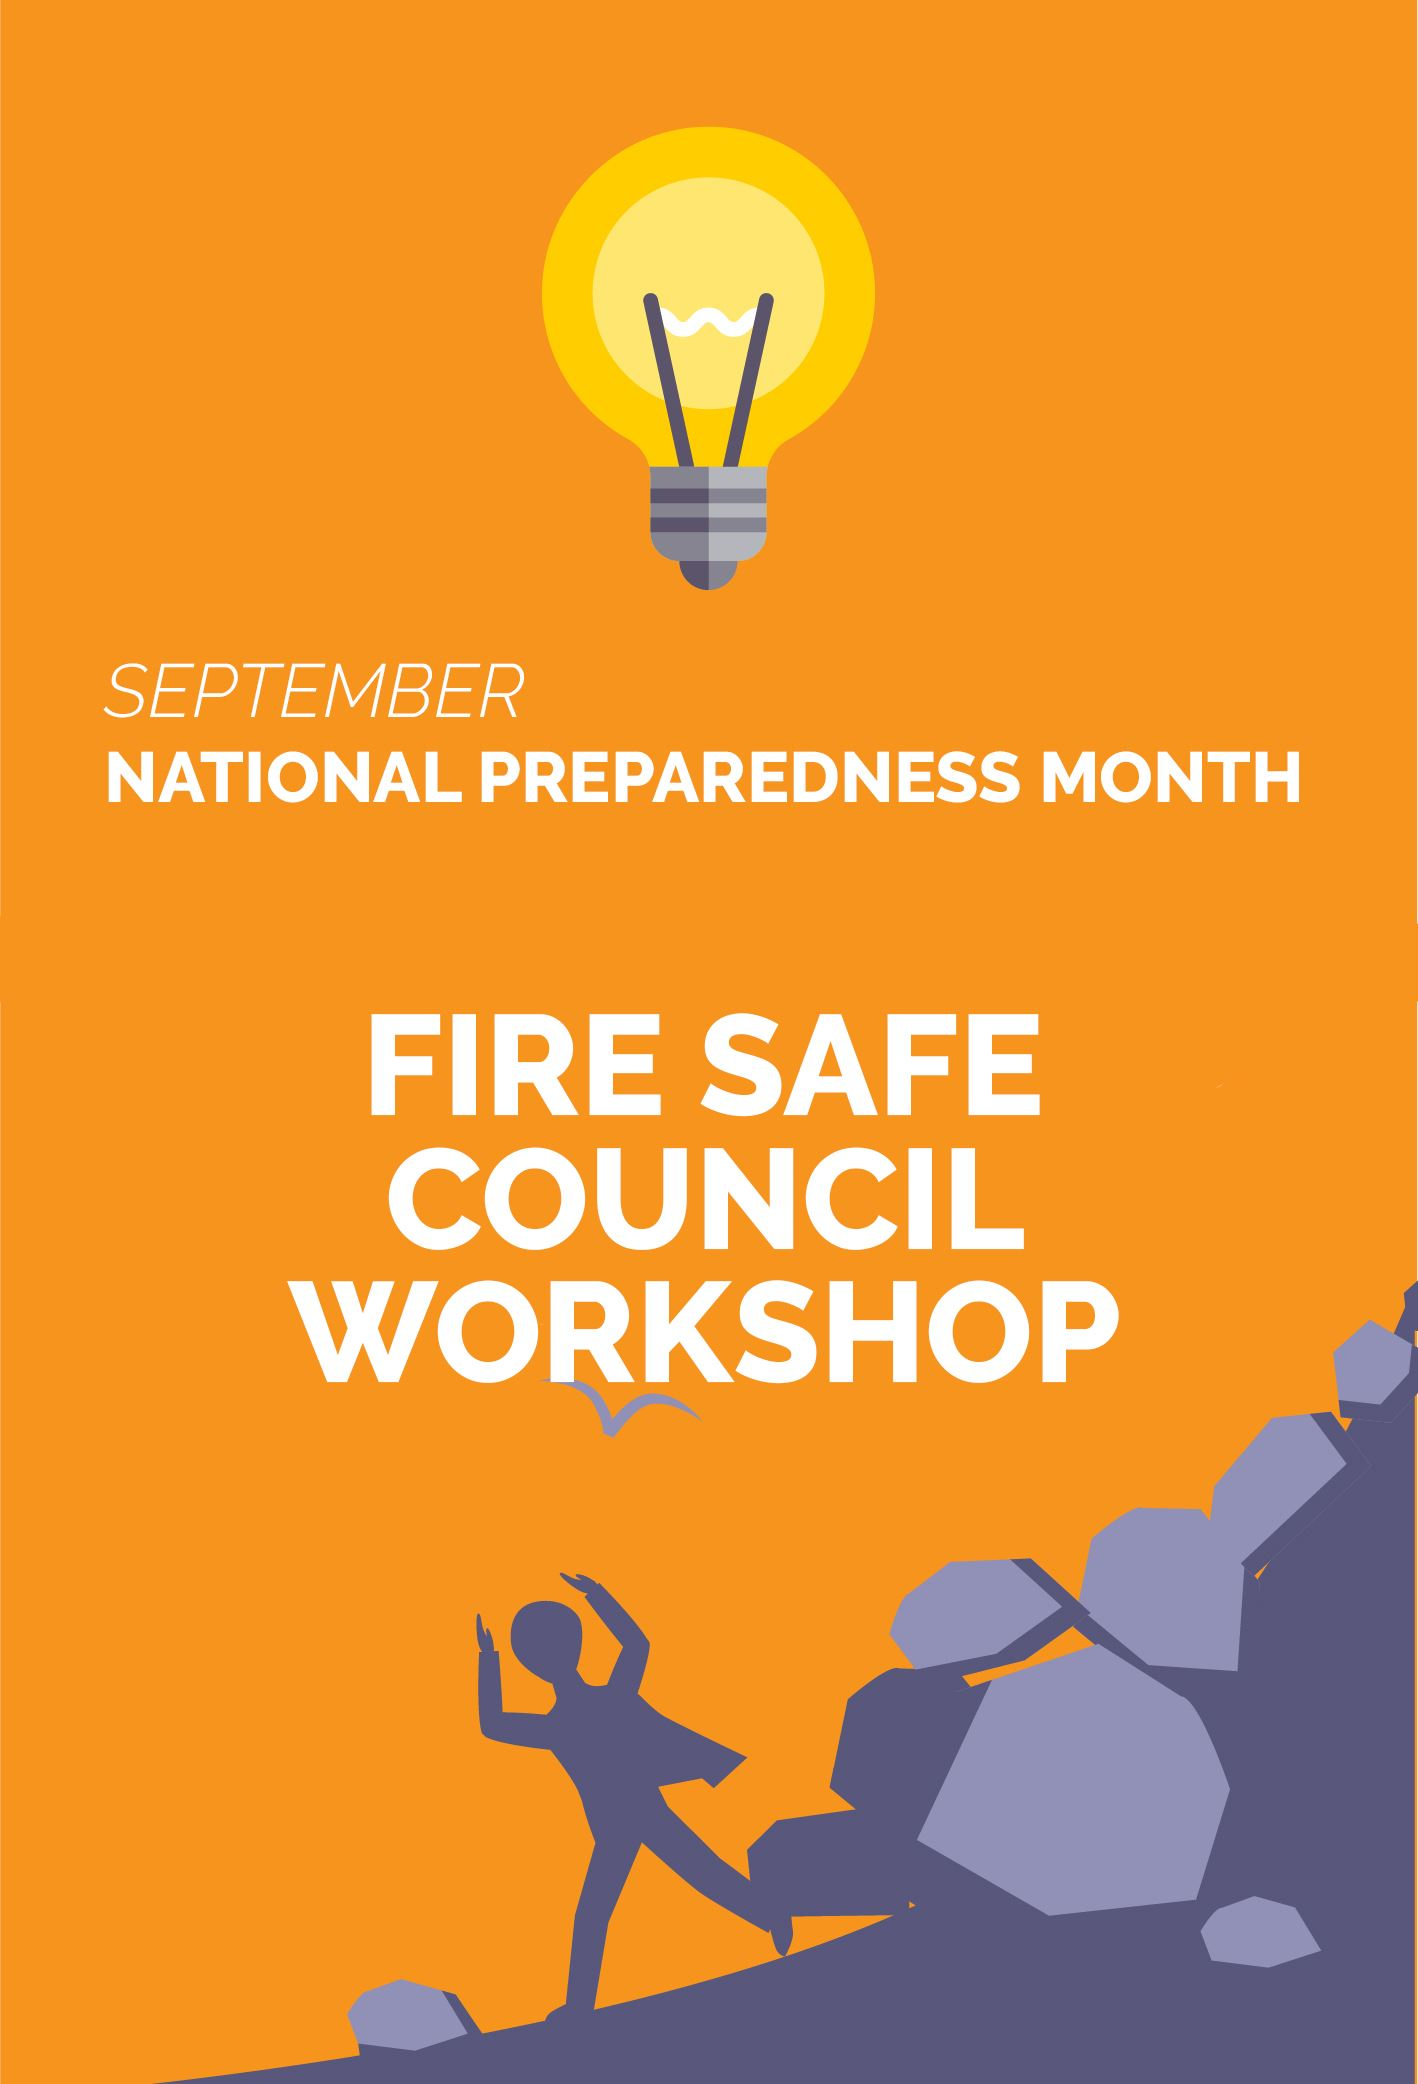 National Preparedness Month Fire Safe Council Workshop Newsflash